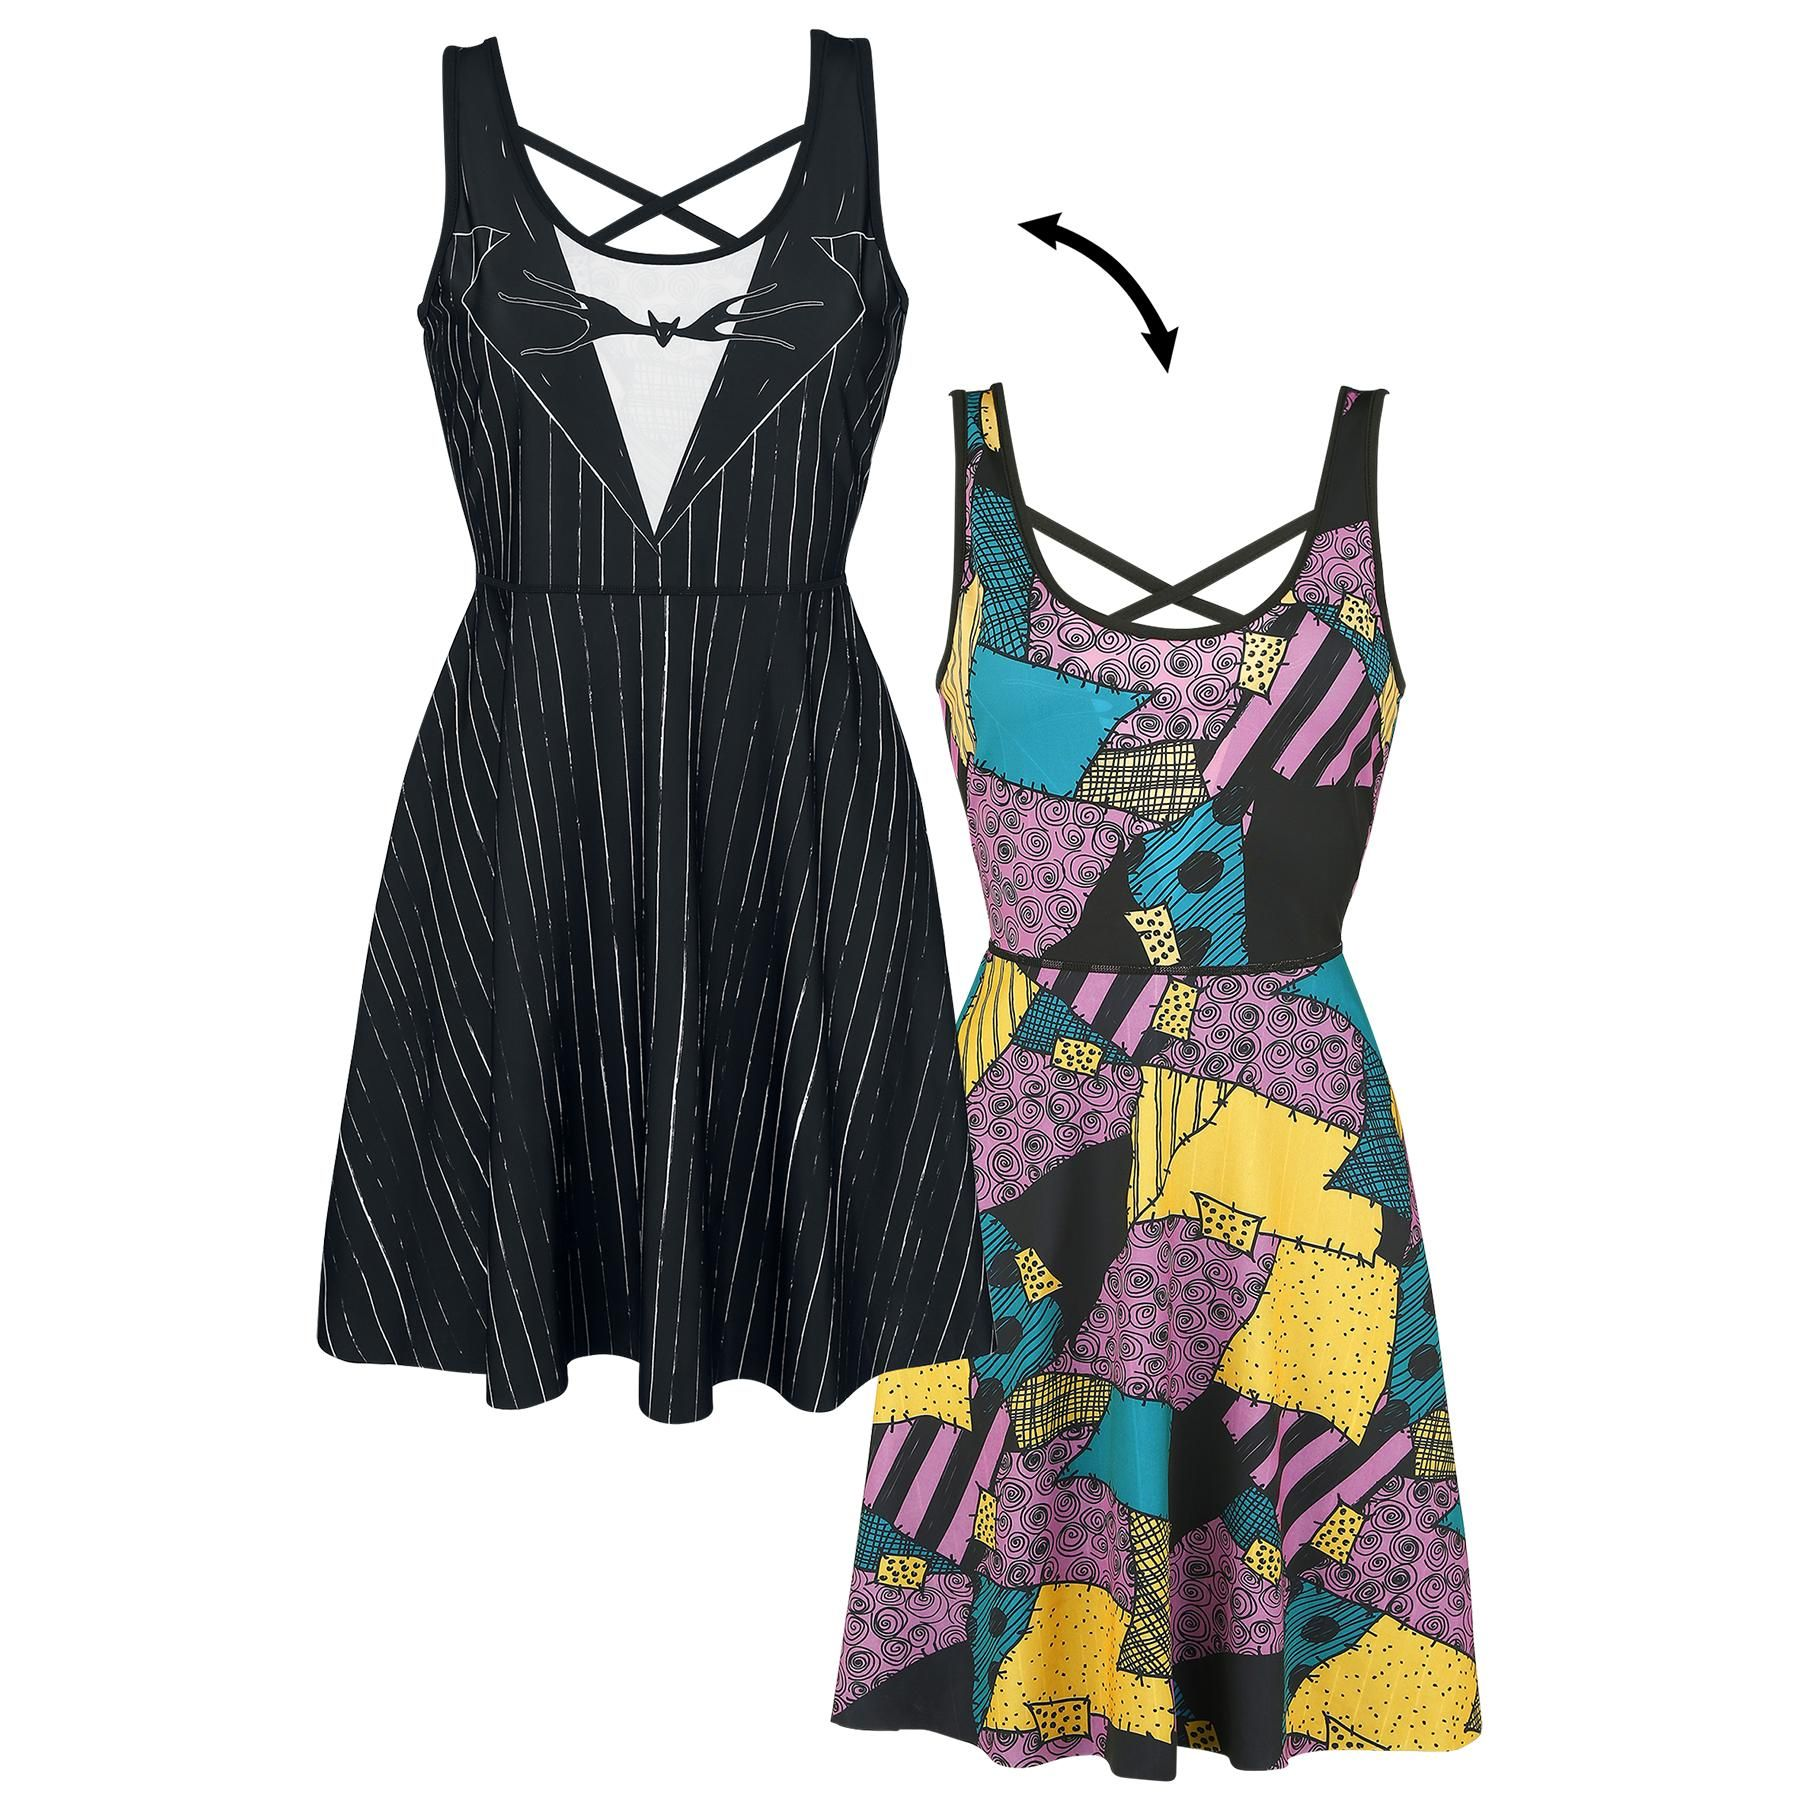 ac78d9cbae Jack And Sally Double Reversible - Short dress by The Nightmare Before  Christmas